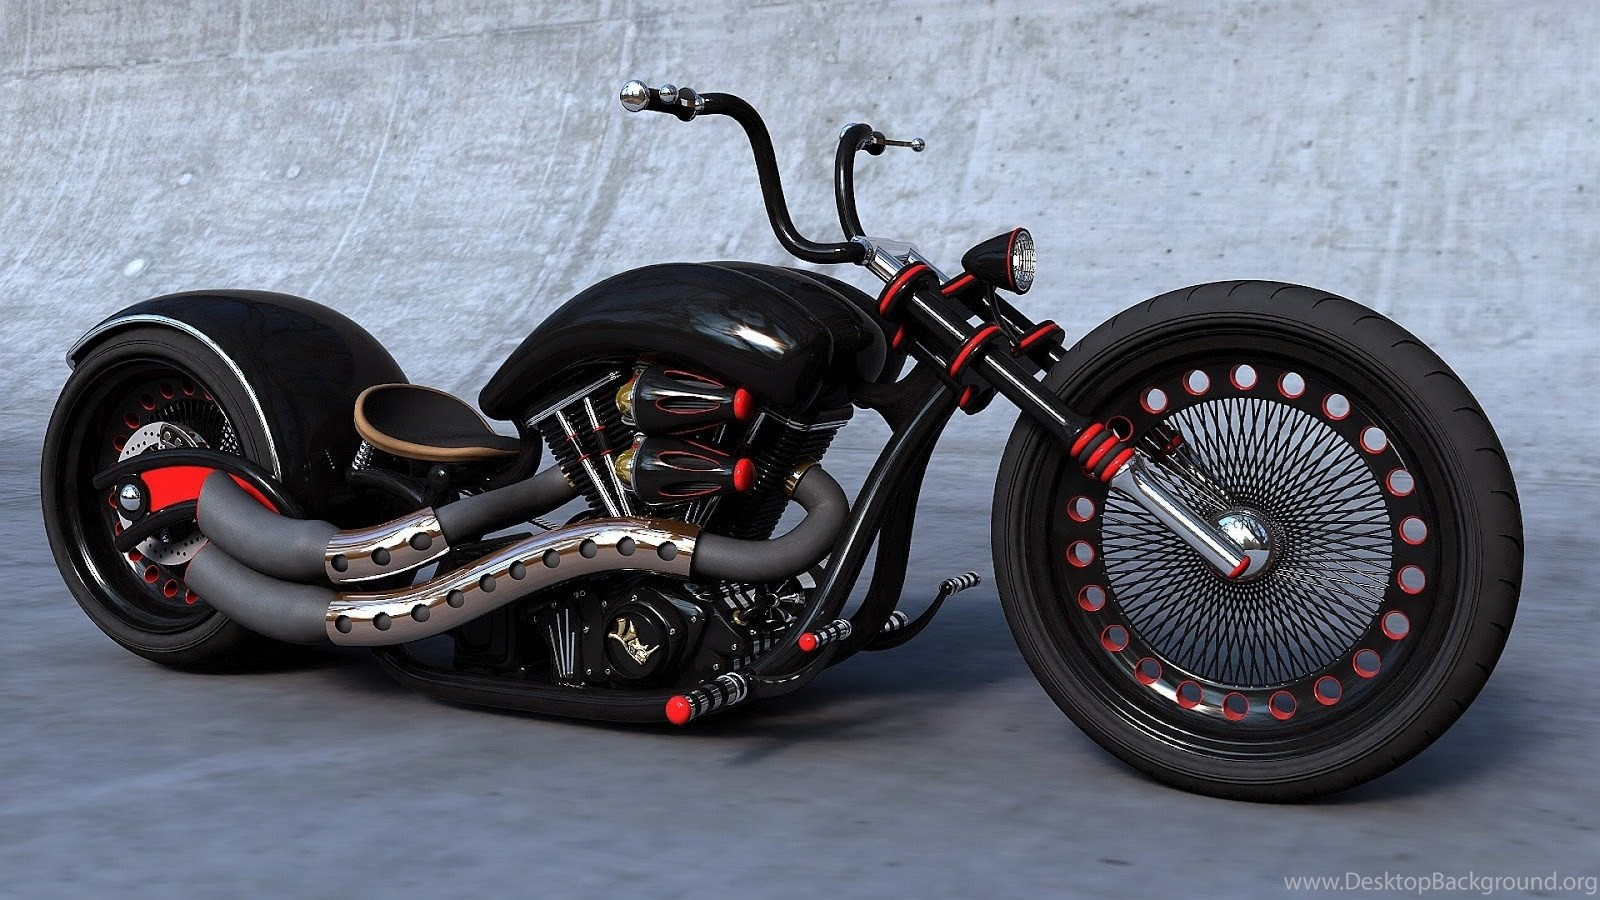 Bikehd Wallpapers Of Bike1080pcustomize Chopper Bike Wallpapers